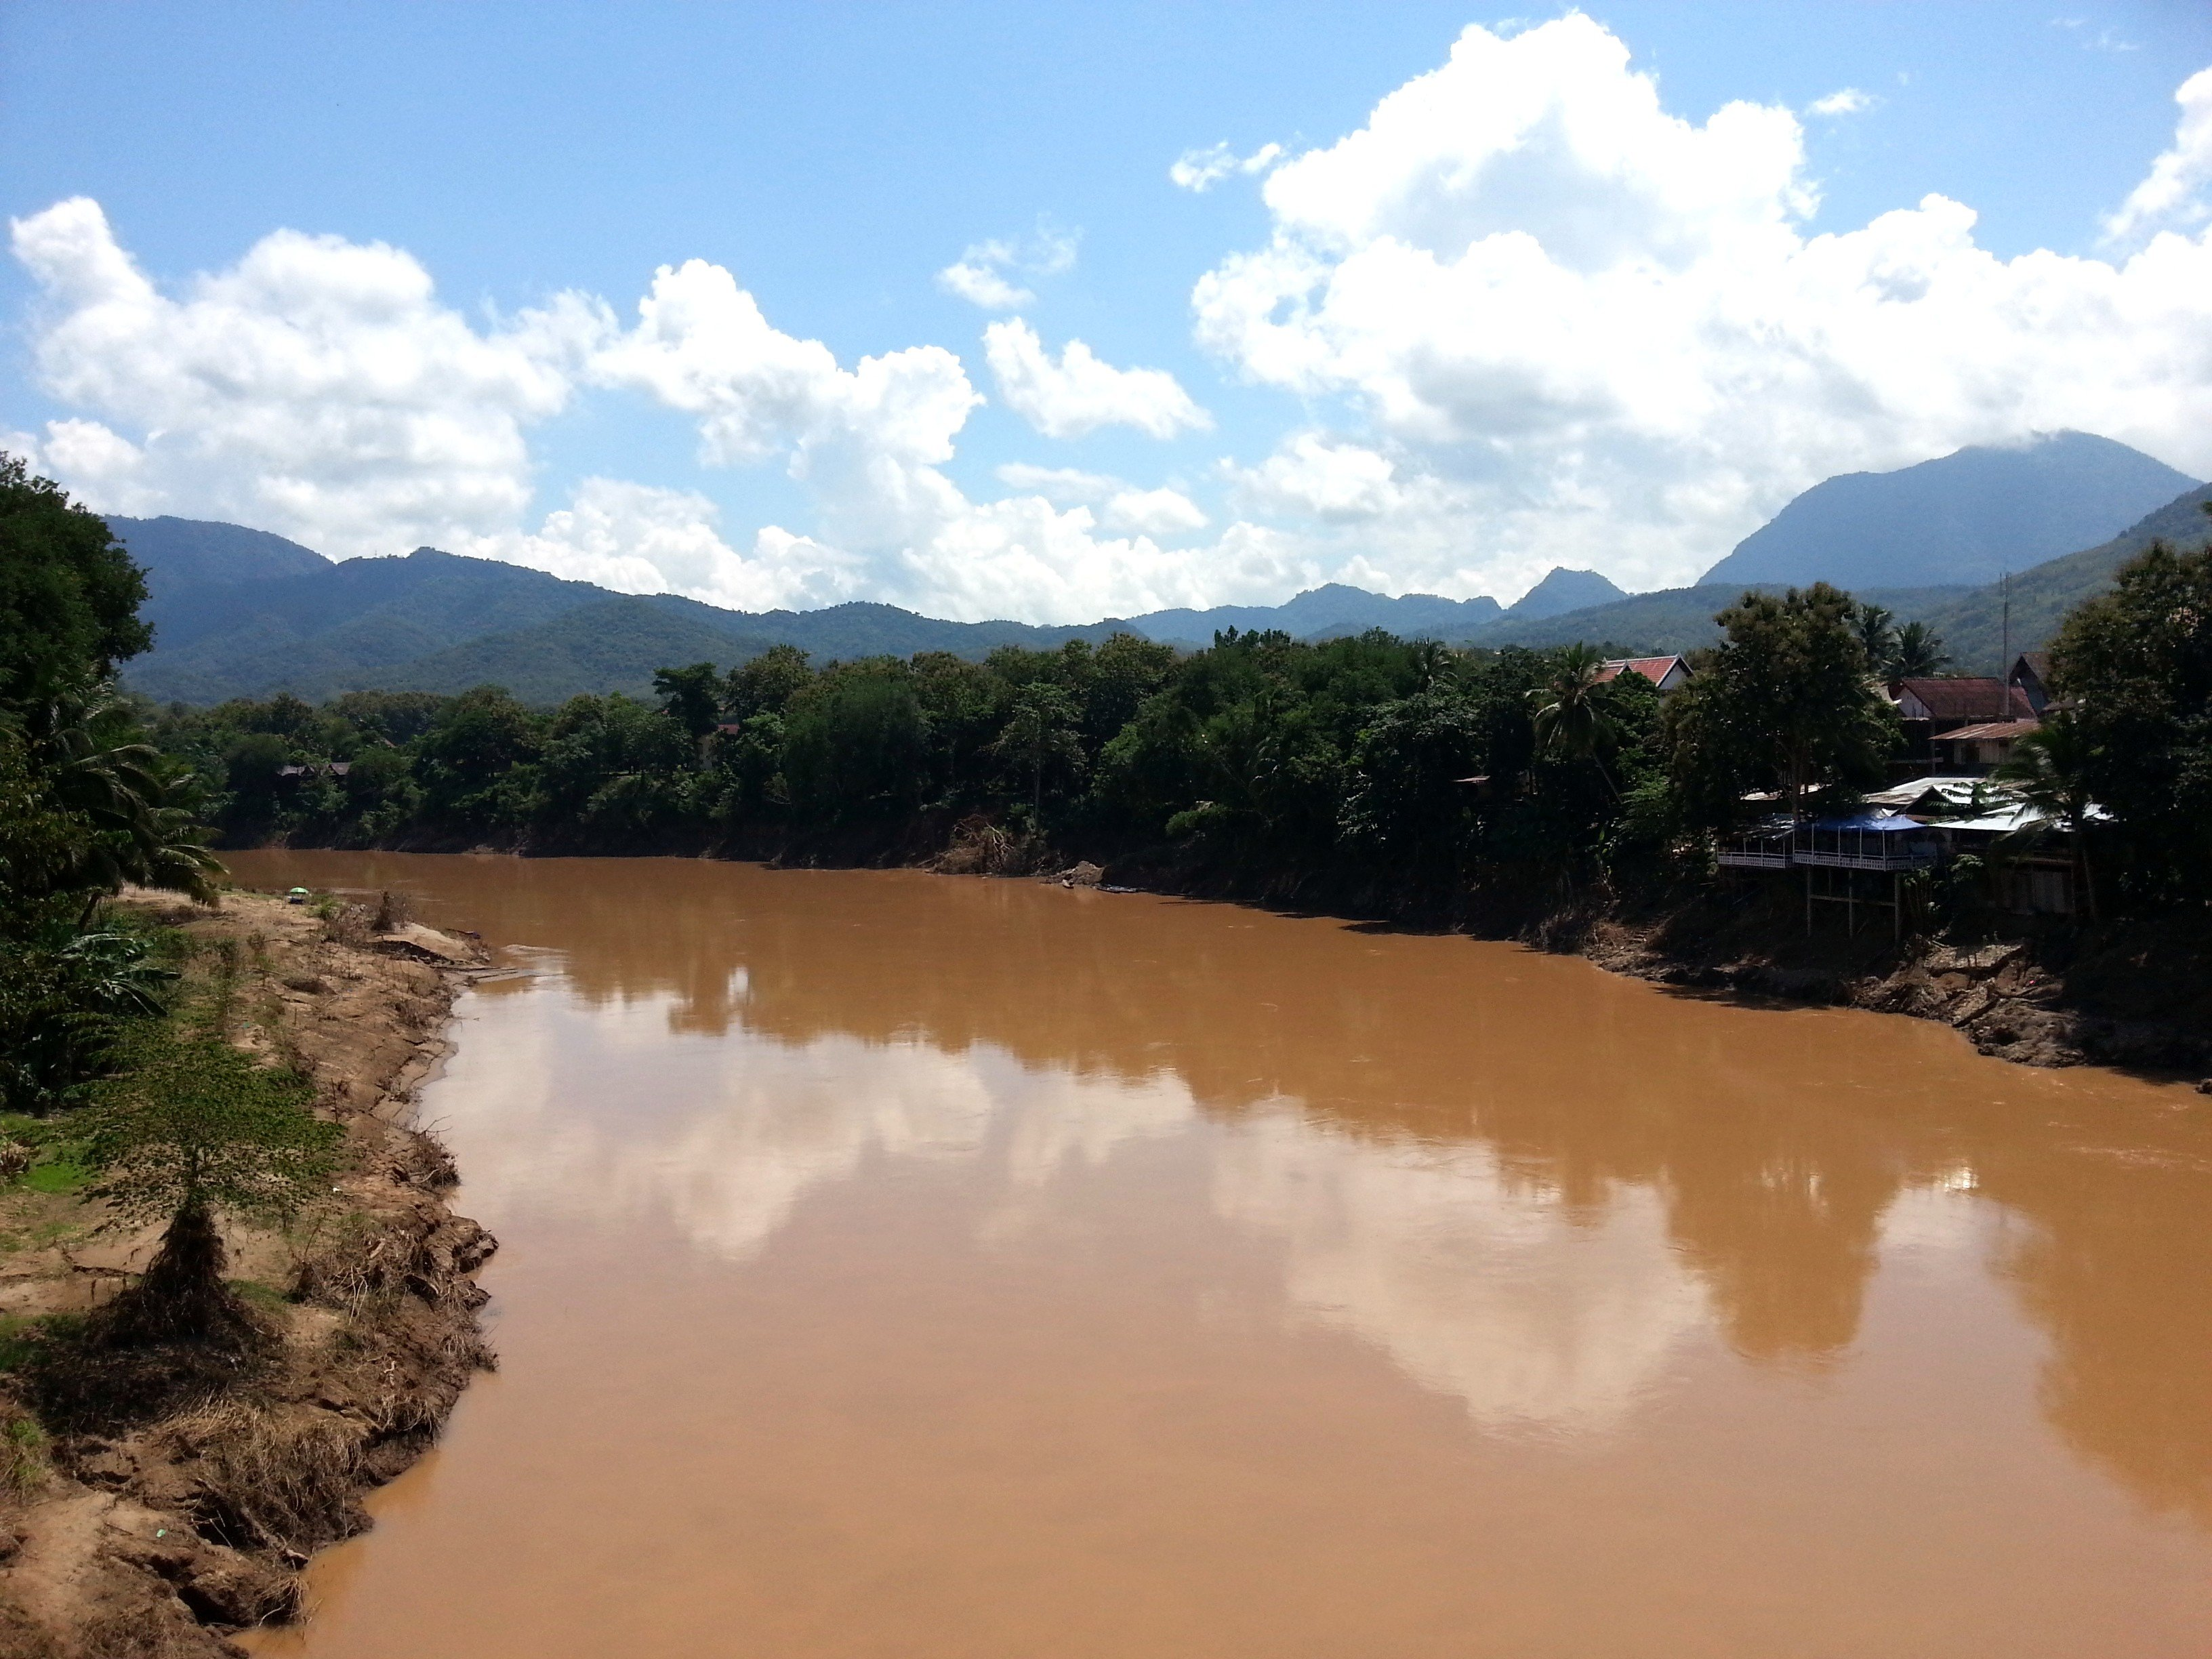 View from the Old Bridge in Luang Prabang